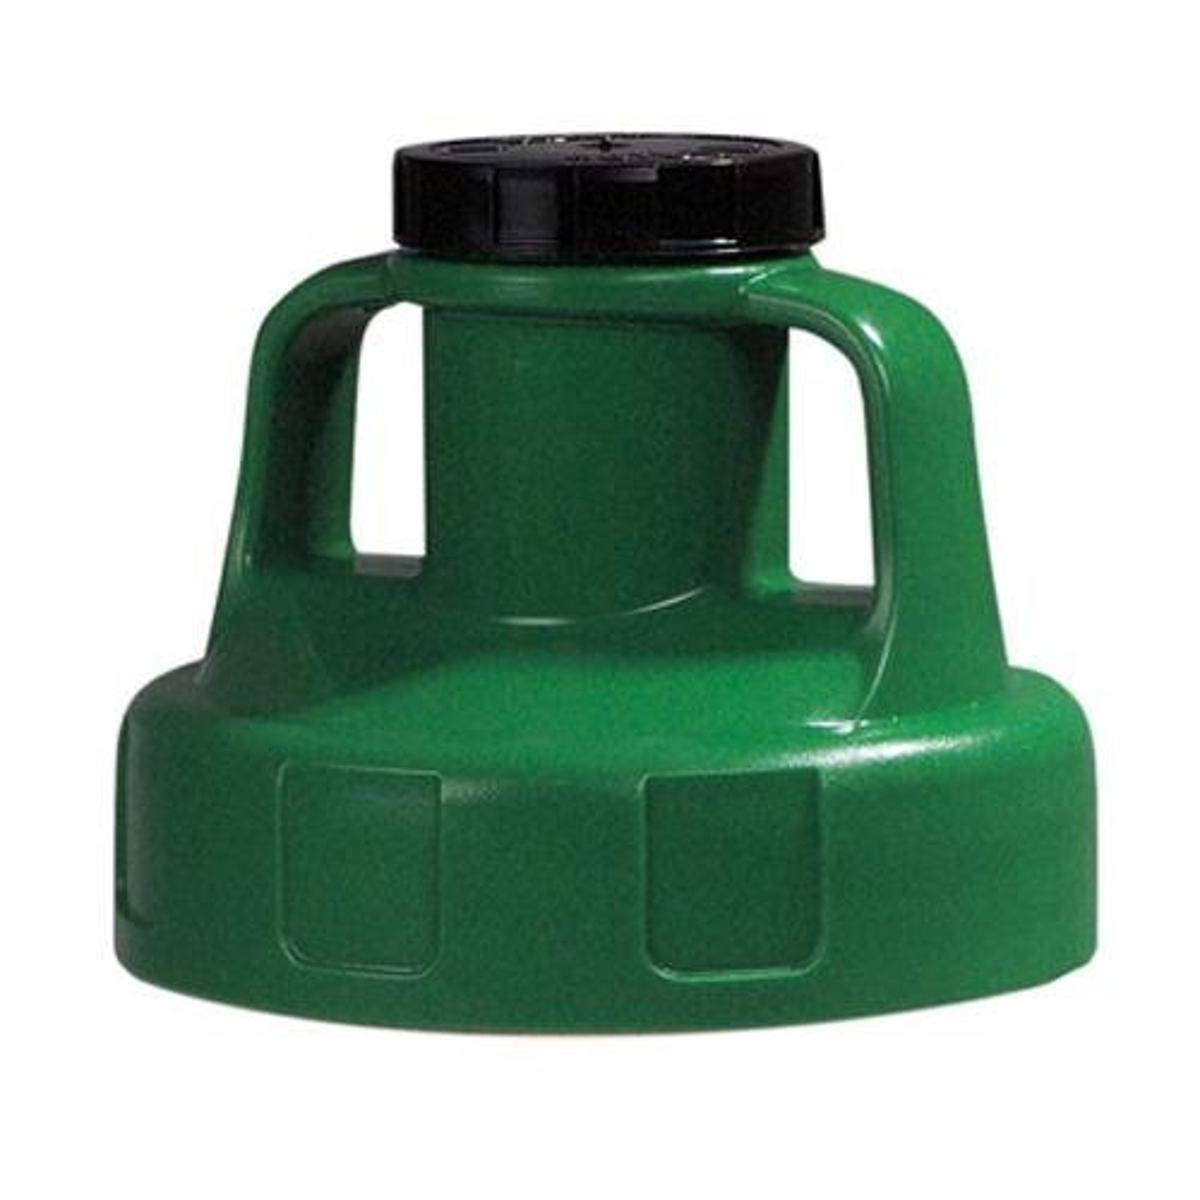 OilSafe 100205 Mid Green Utility Lid